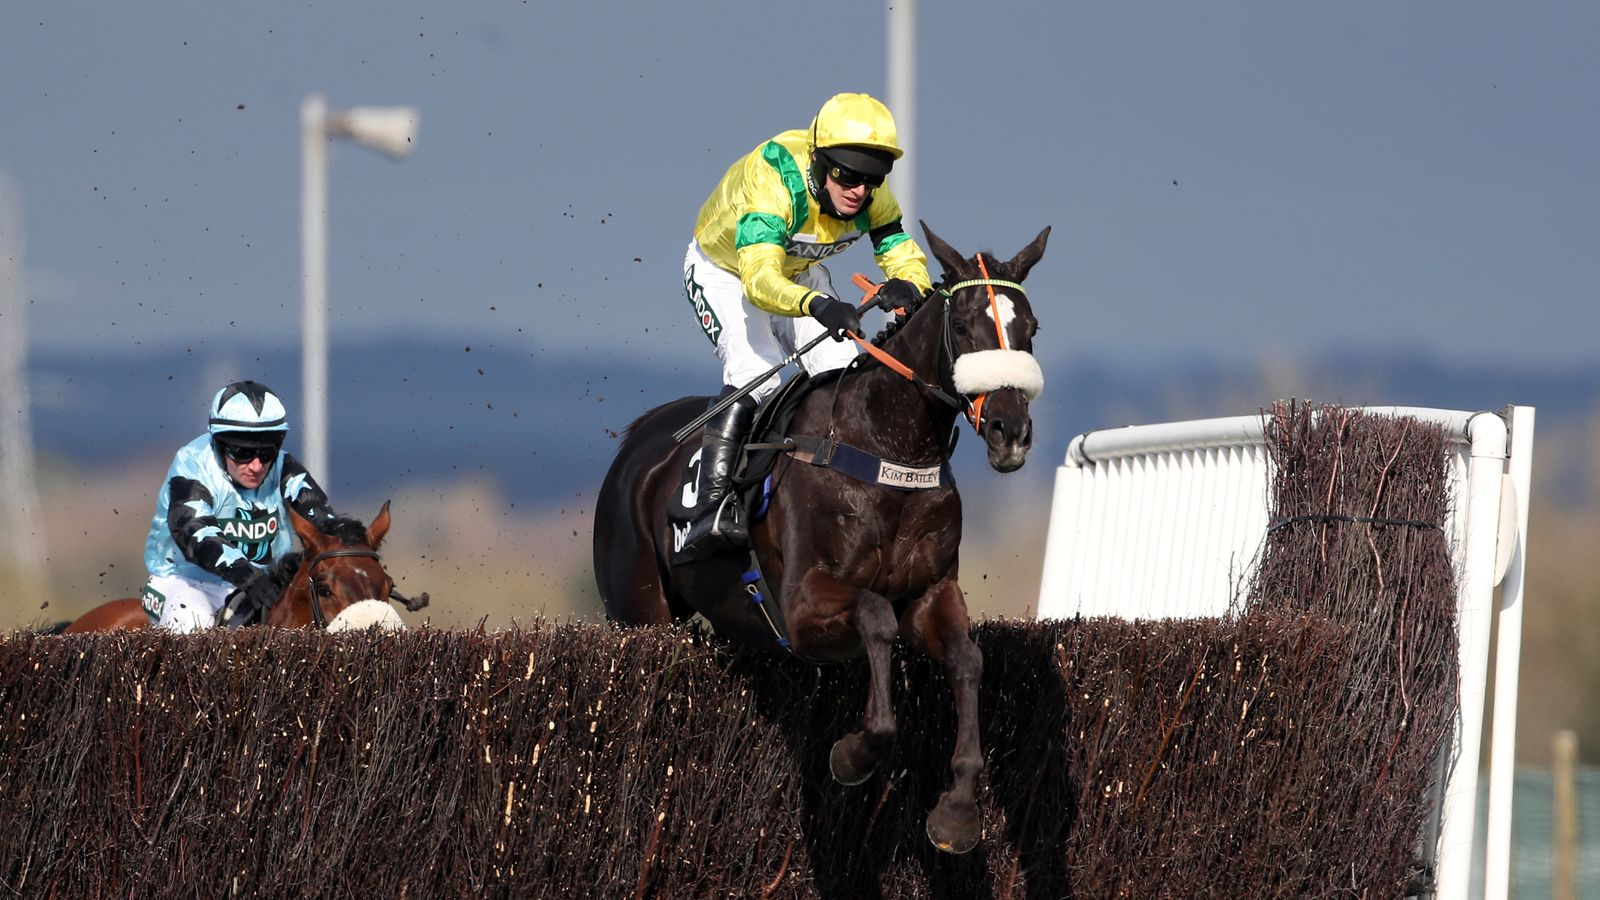 Happygolucky injury: Kim Bailey's Aintree winner ruled out for the season with minor tendon issue